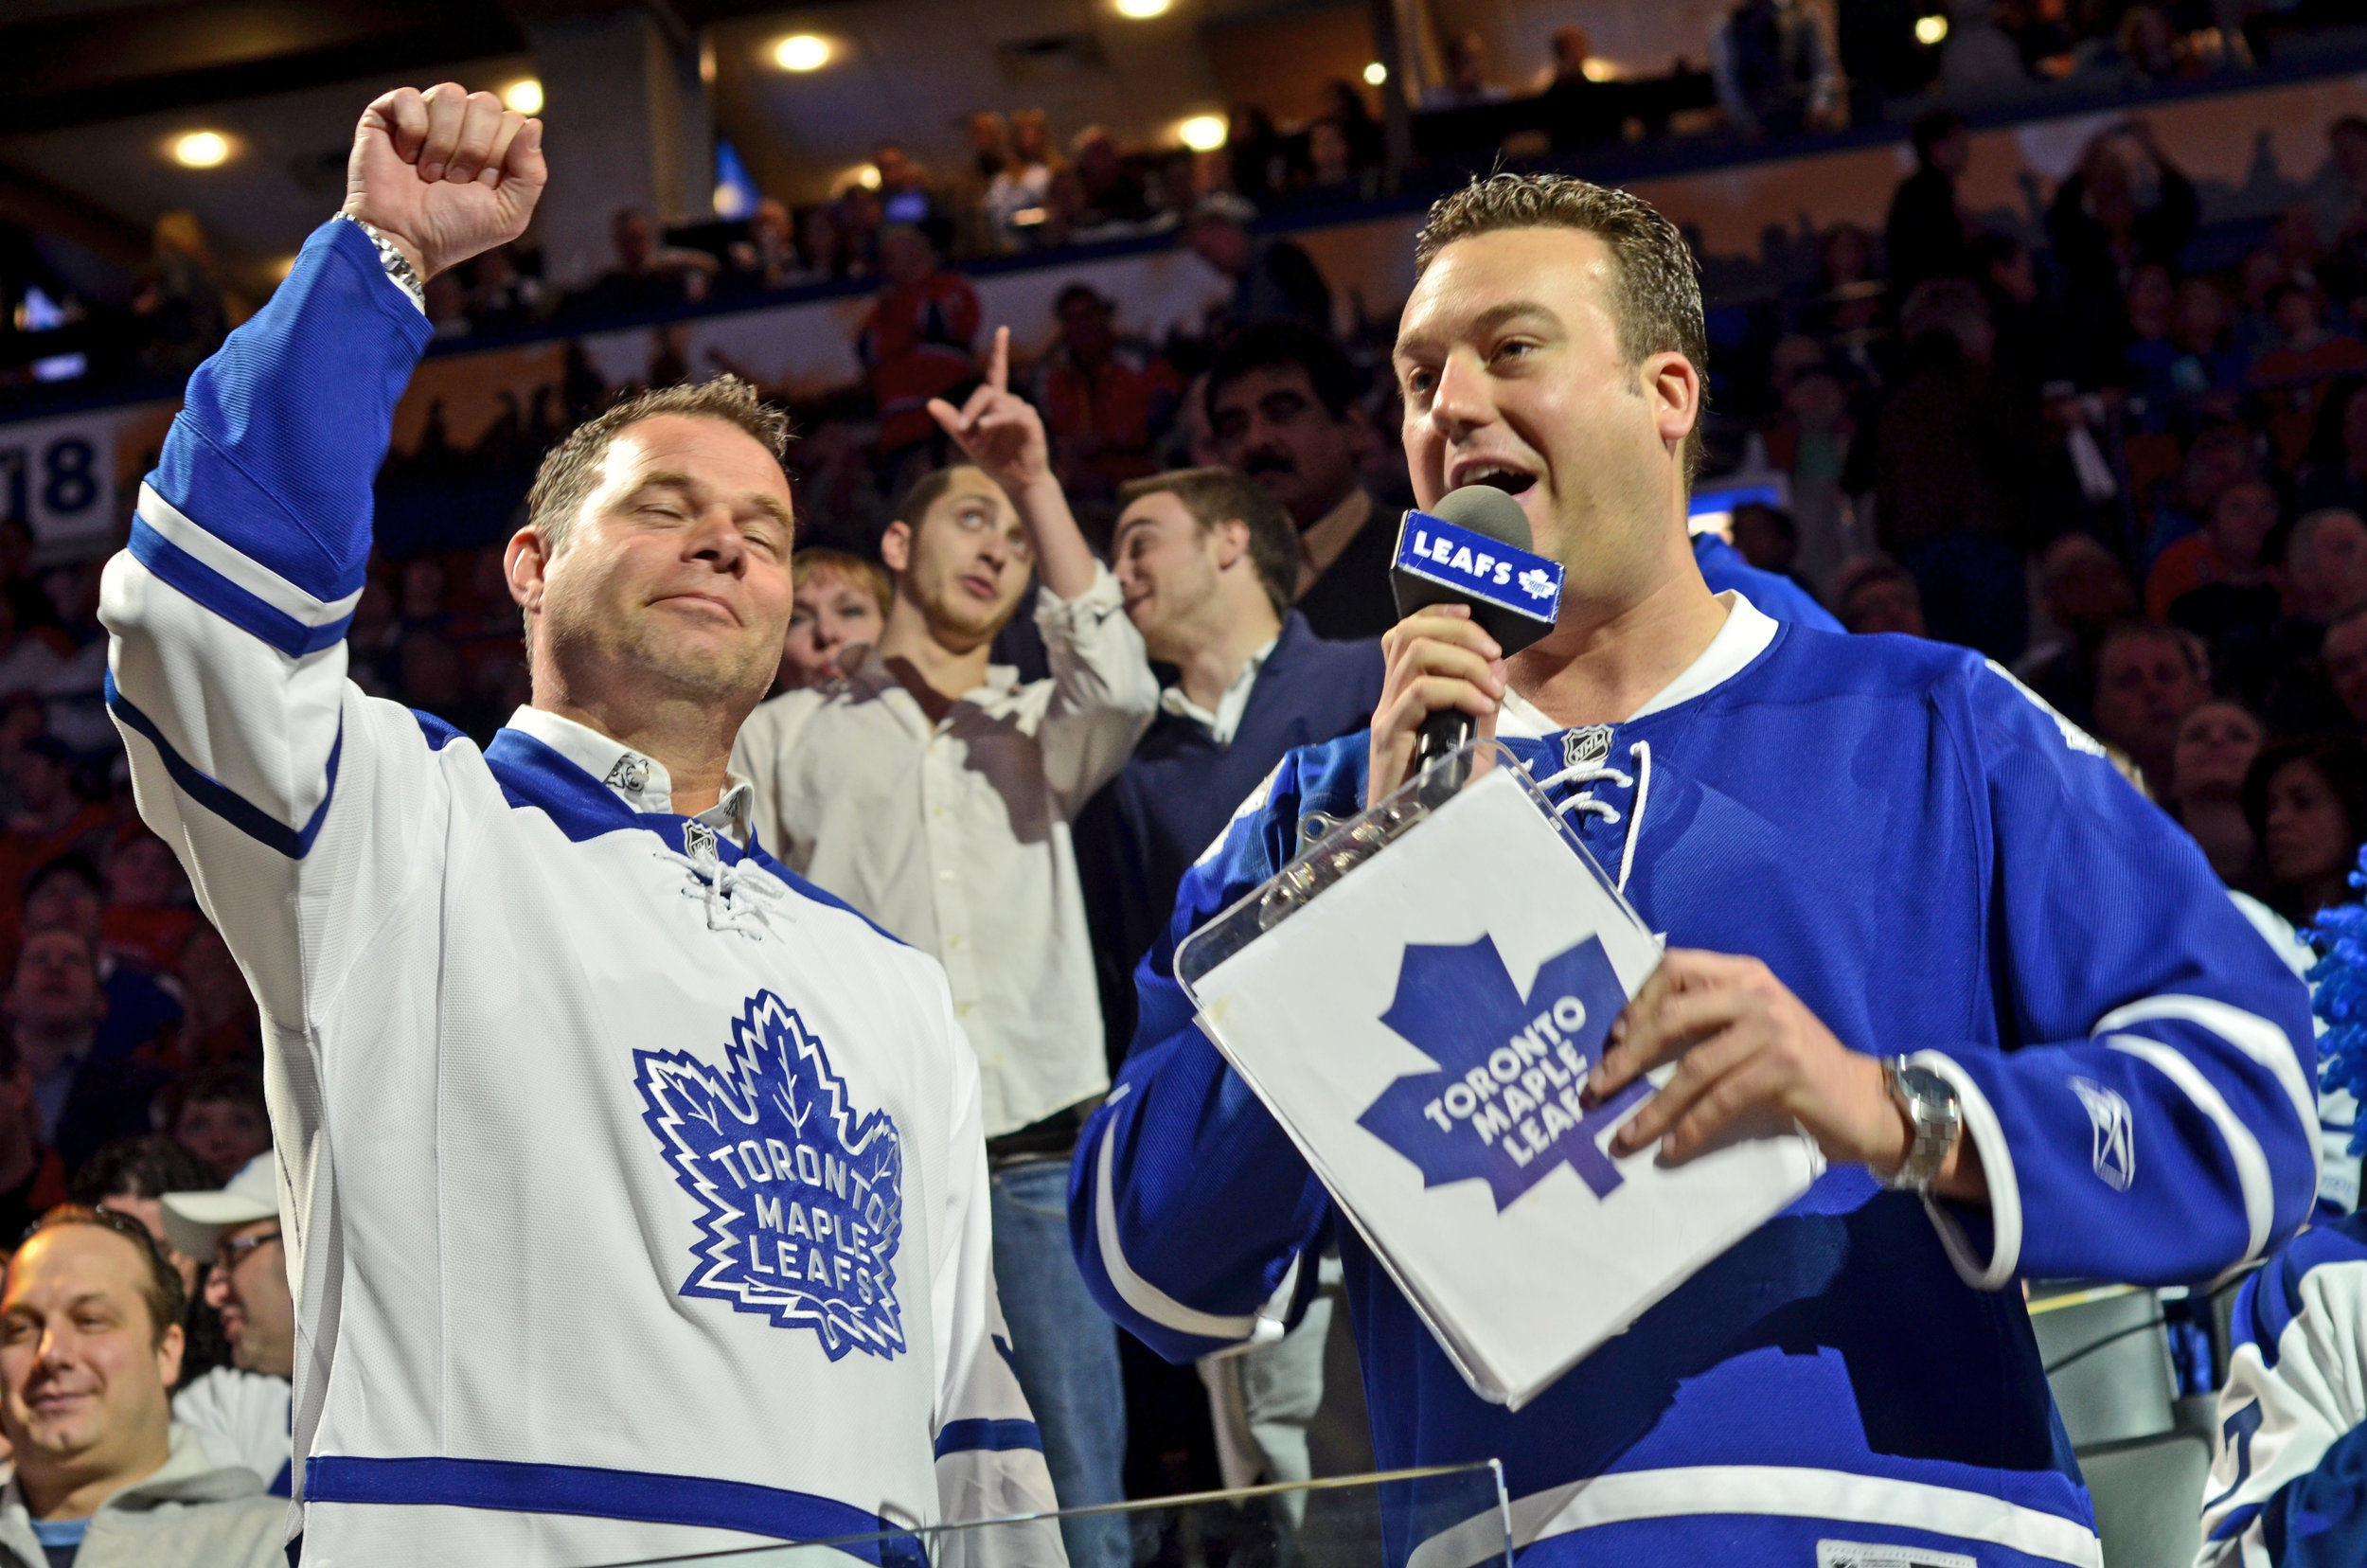 In-Game Host - Toronto Maple Leafs